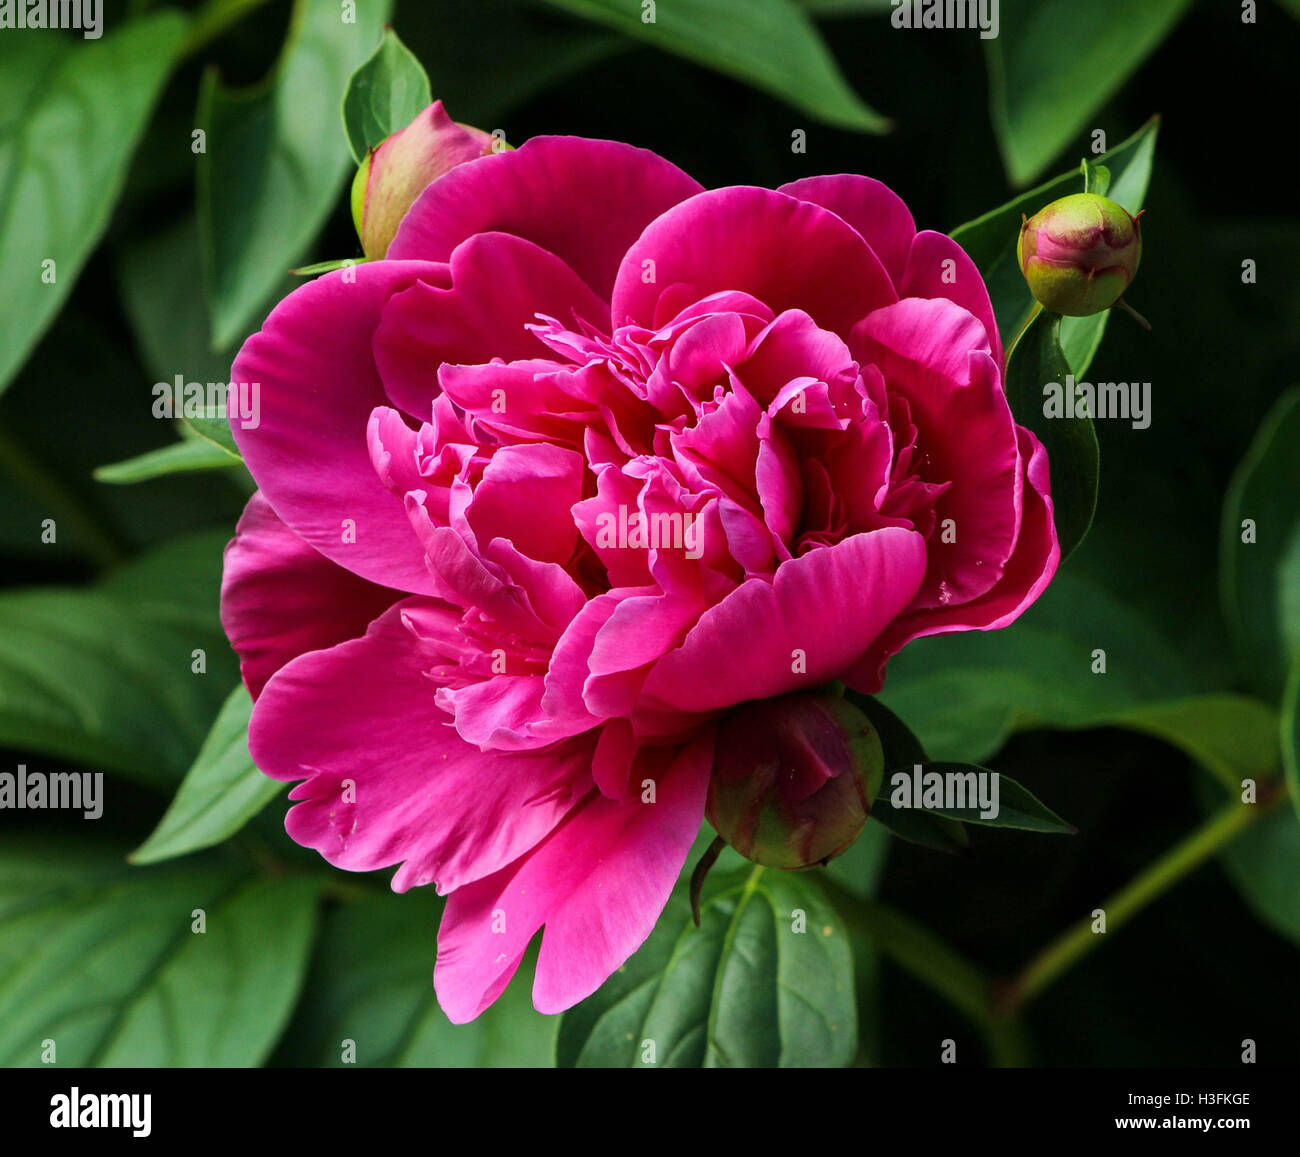 Flowers Near Me Flower Delivery Stock Photo Royalty Free